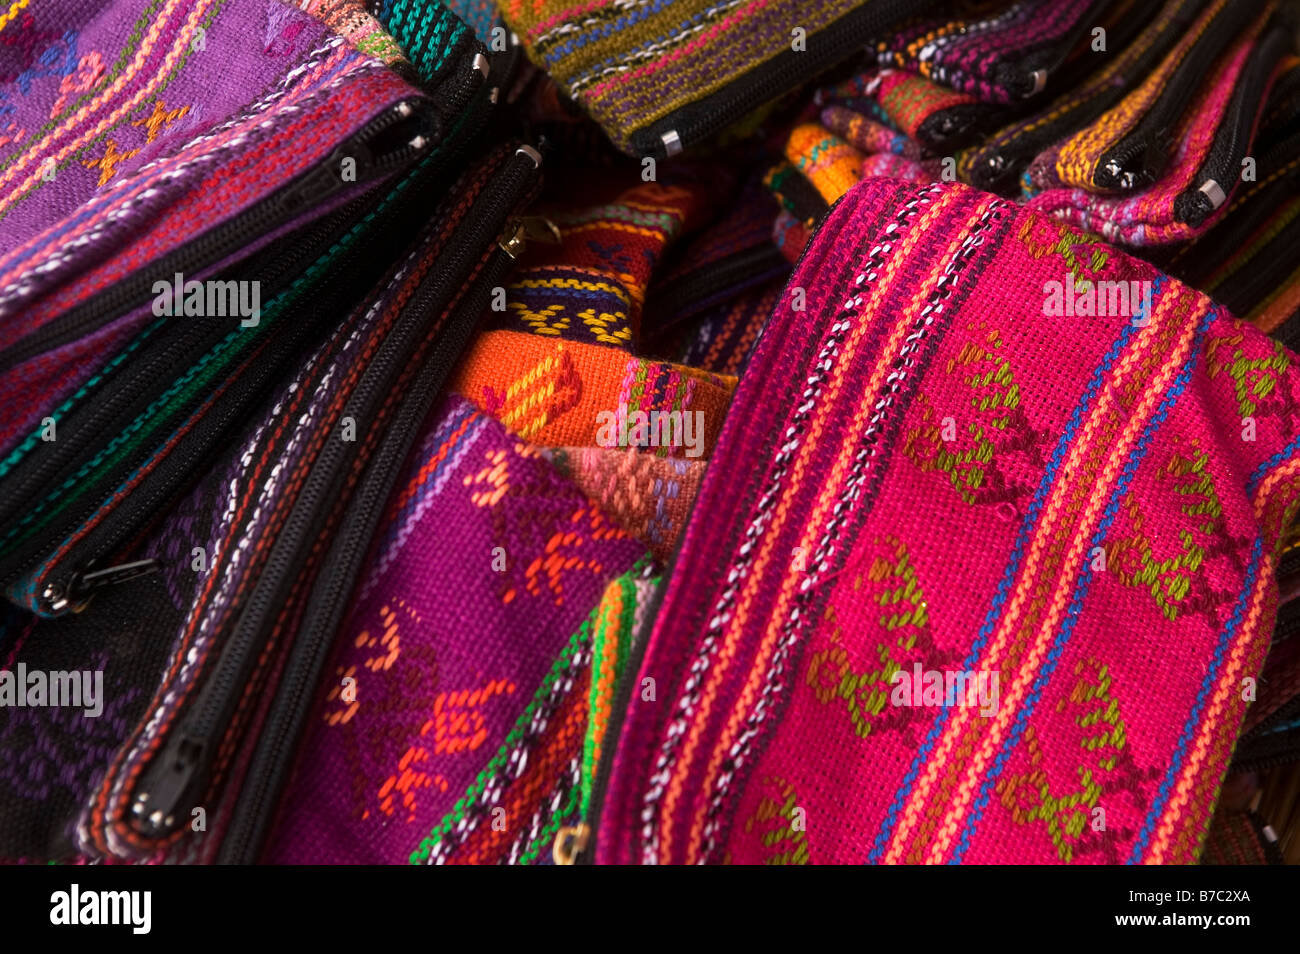 Small Zippered Bags - Stock Image